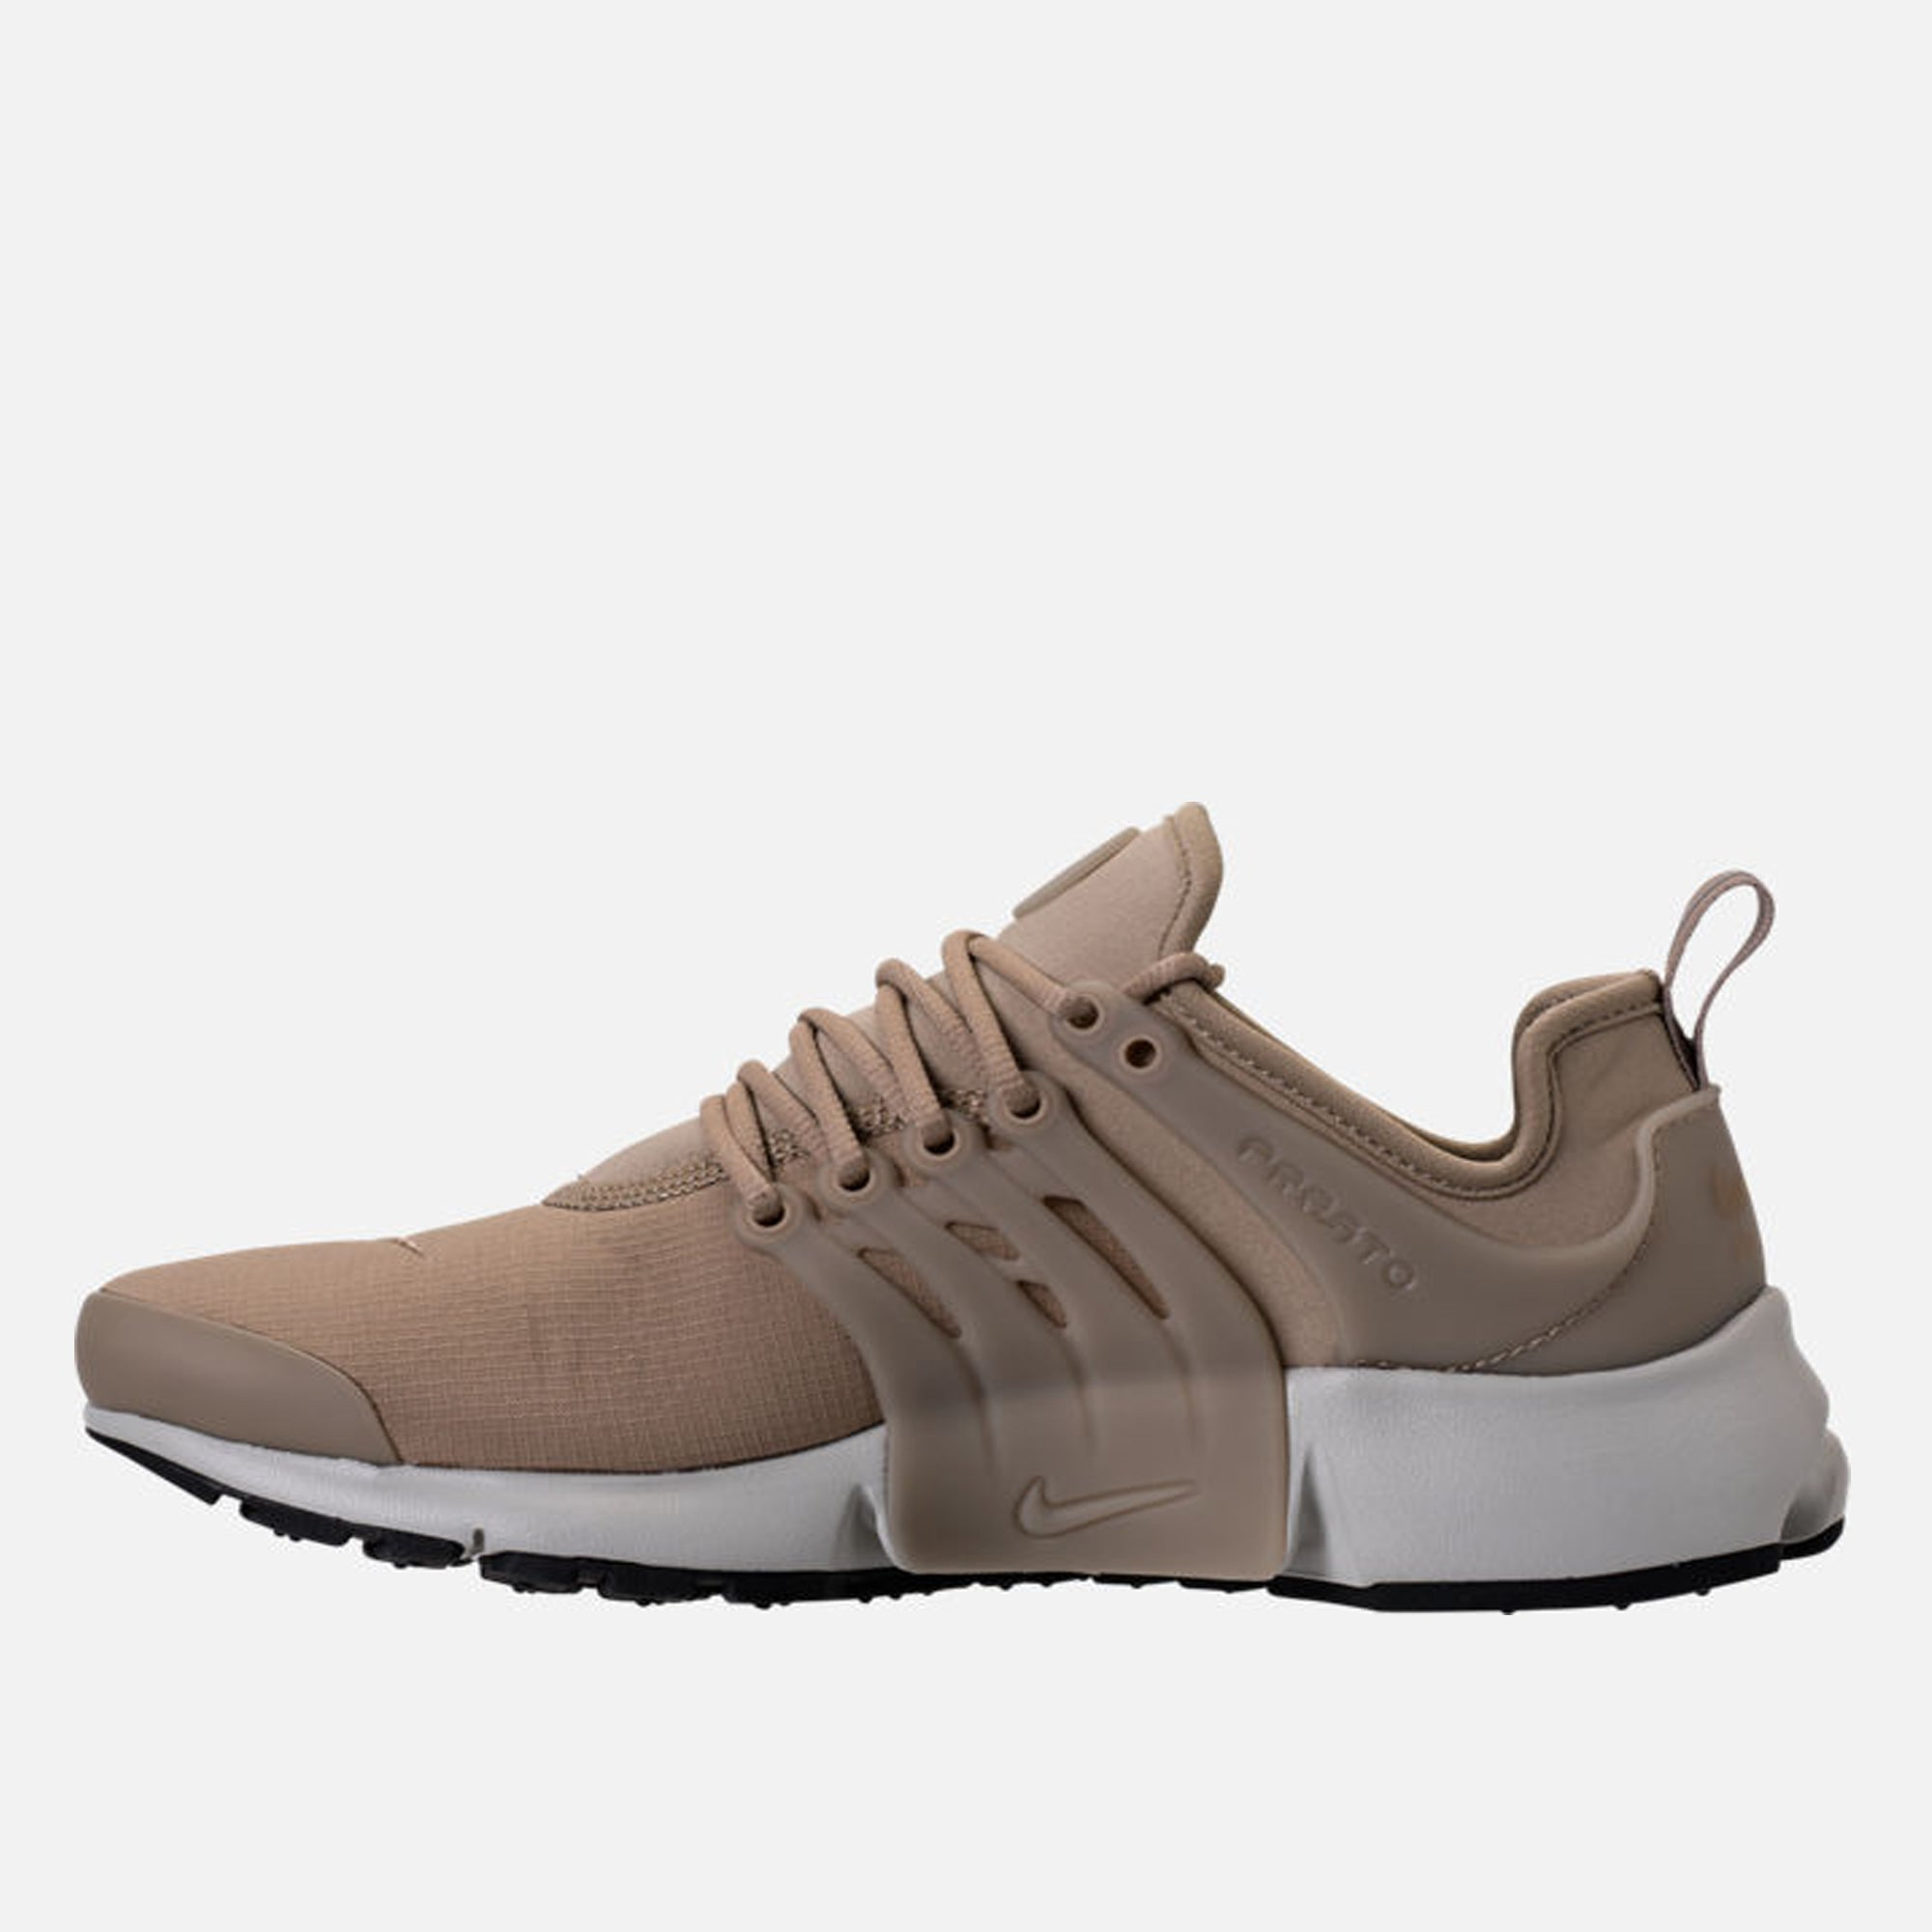 050dd6abff Women_s_Nike_AIR_Presto_TD_Casual_Shoes_Khaki_Pale_Grey-4.jpg